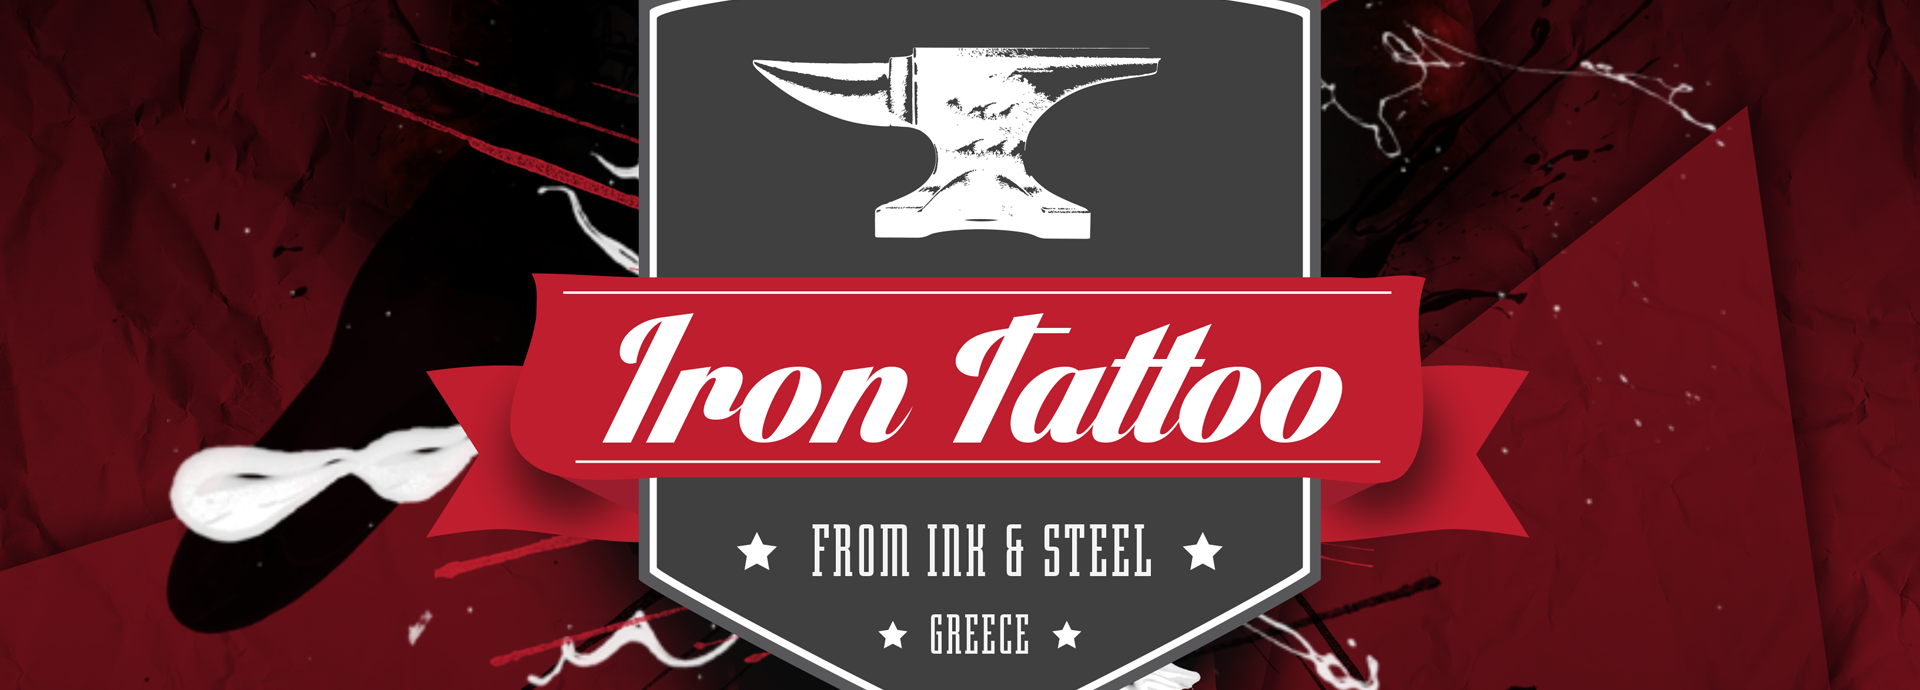 IRON TATTOO STUDIO